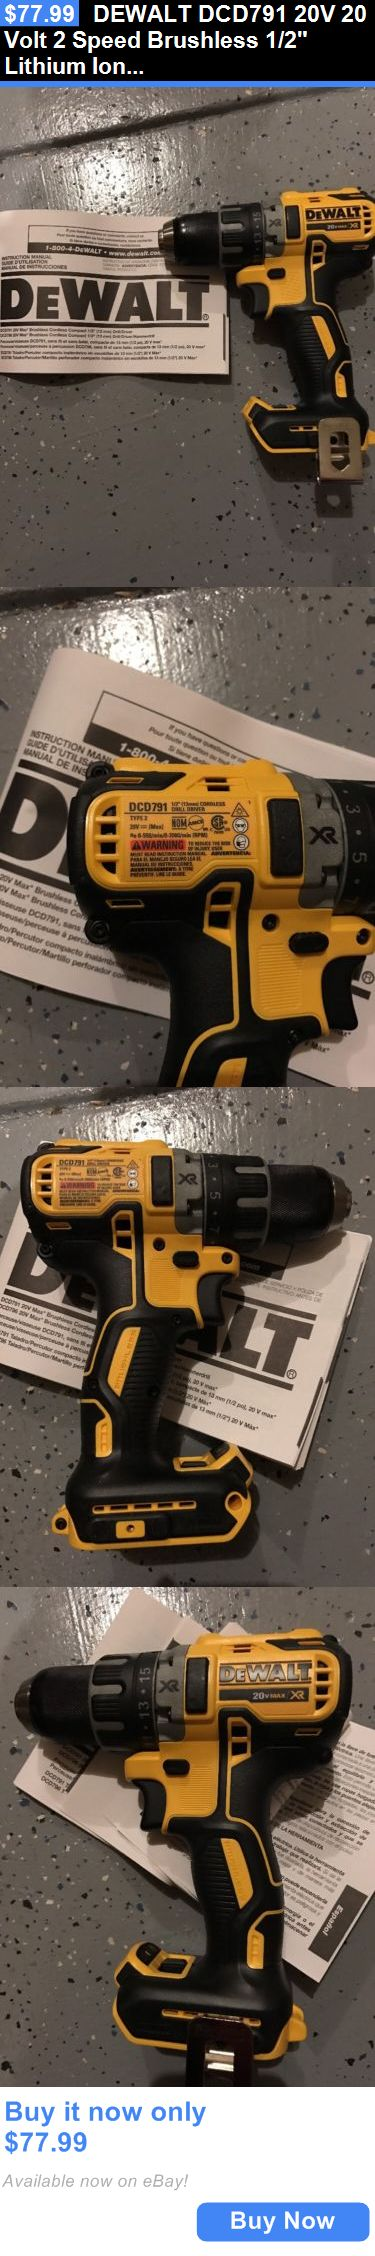 tools: Dewalt Dcd791 20V 20 Volt 2 Speed Brushless 1/2 Lithium Ion Max Drill Driver BUY IT NOW ONLY: $77.99